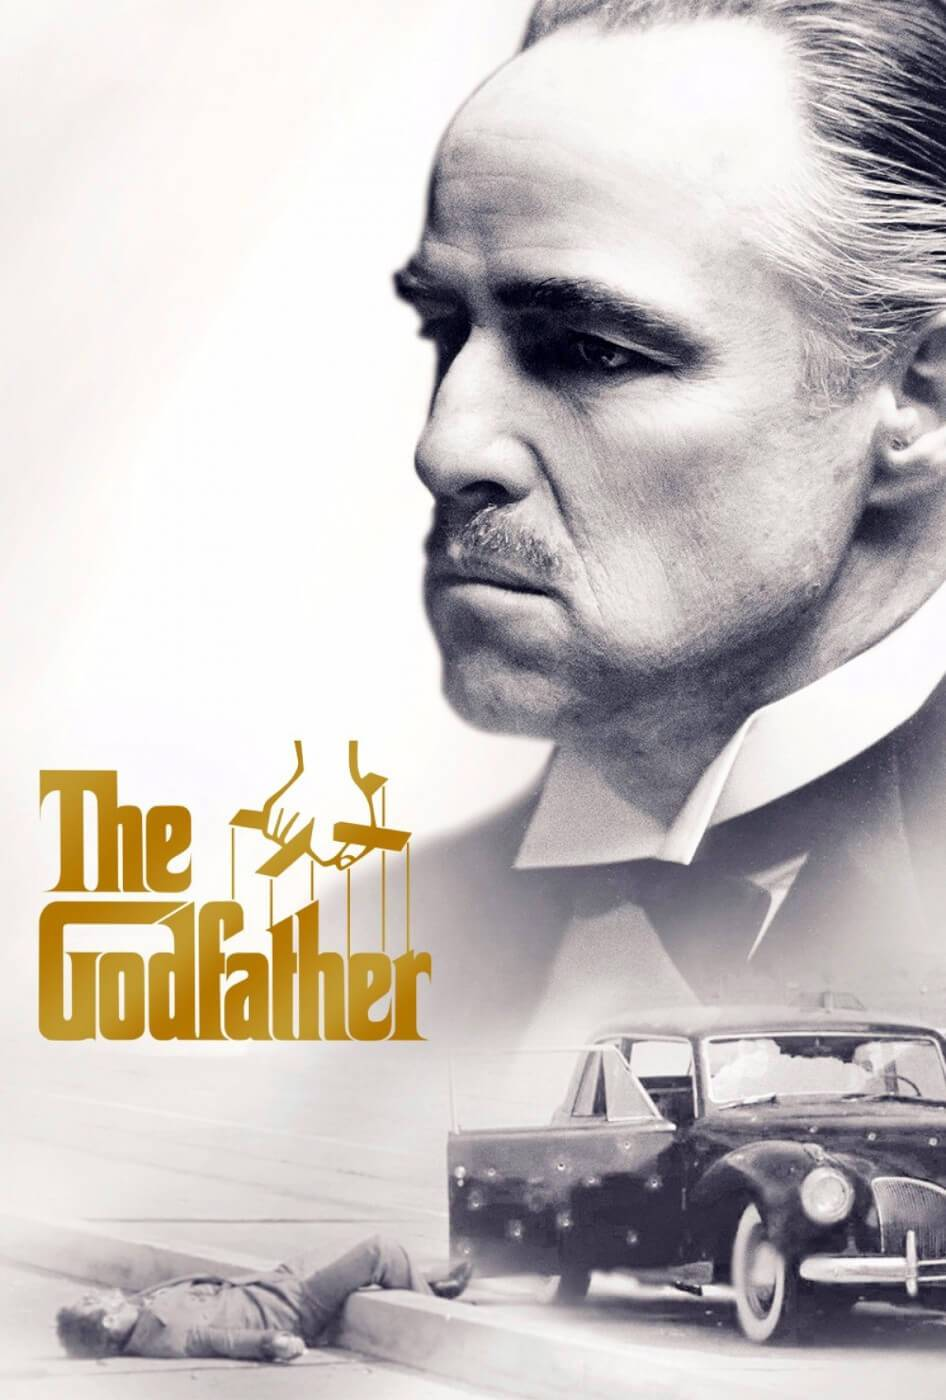 Movie Poster Art - The Godfather - Tallenge Hollywood Poster Collection - Posters